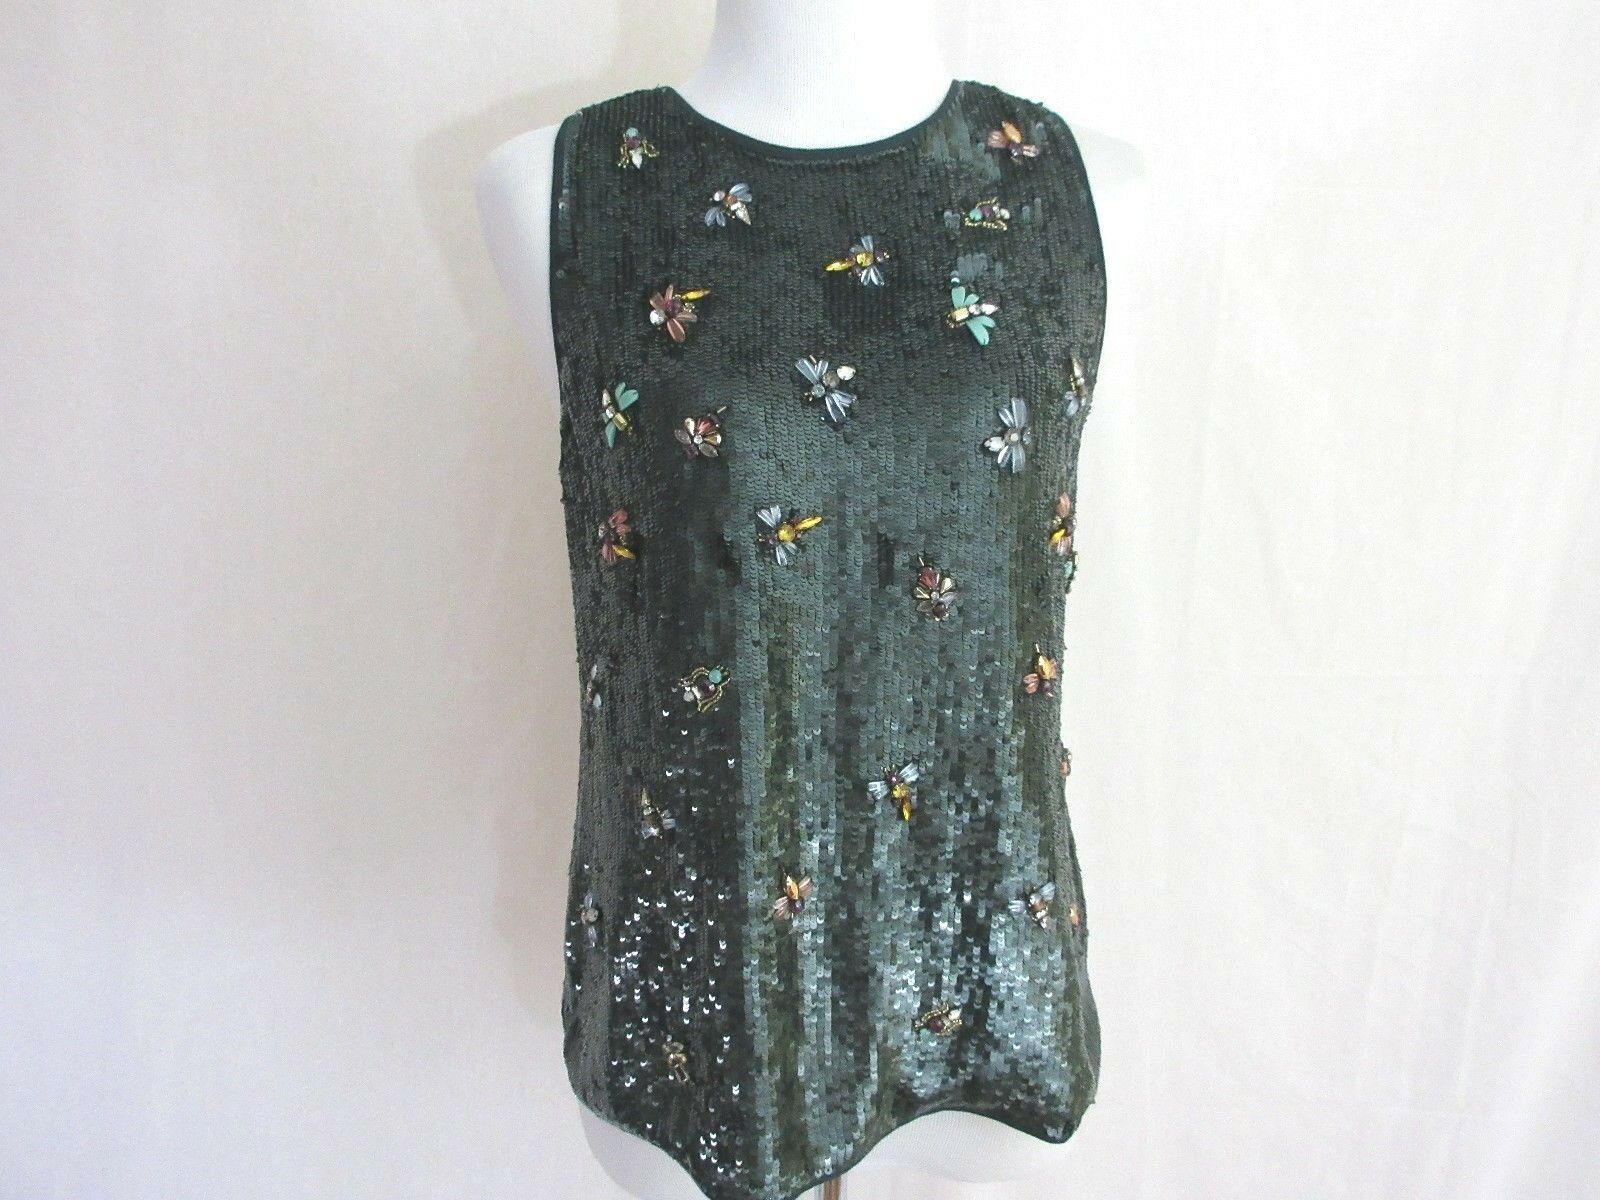 J. Crew Collection Silk Sequin Heavily Embellished Sleeveless Top Tank NWT XS/S